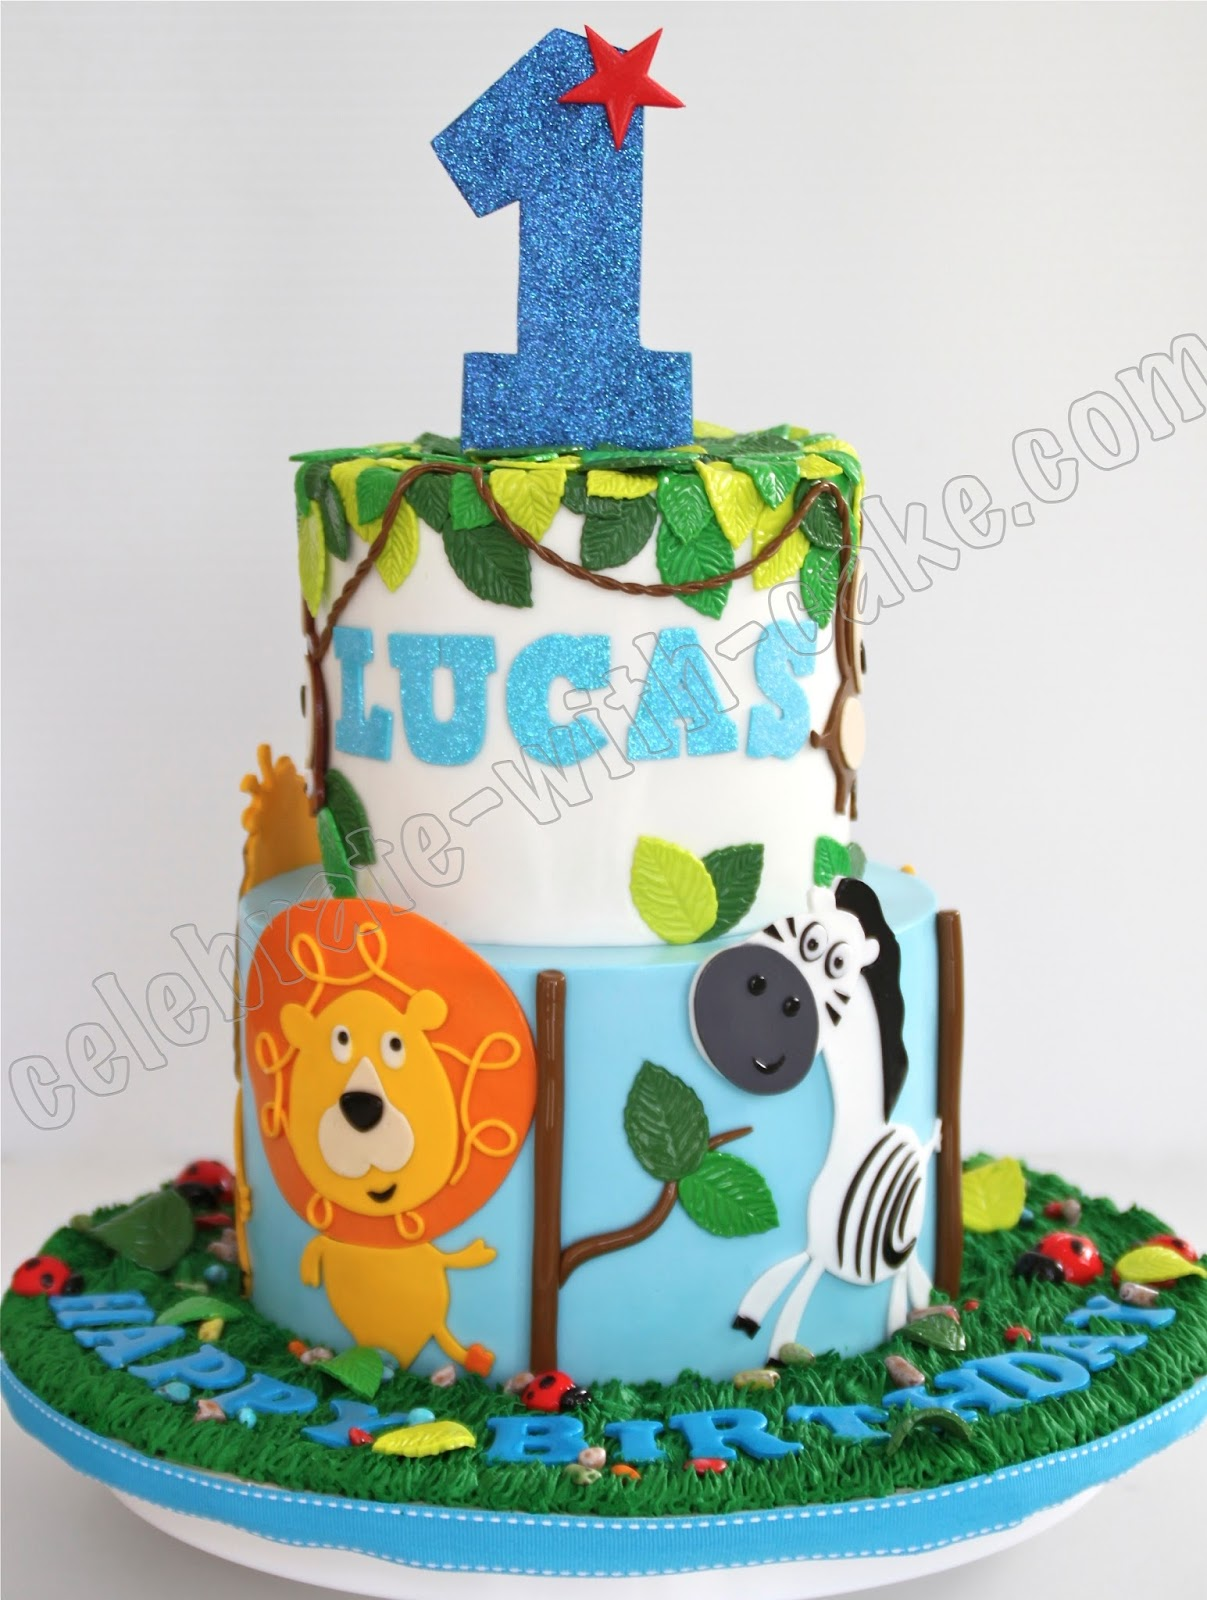 Celebrate With Cake 1st Birthday Animal Safari Tier Cake